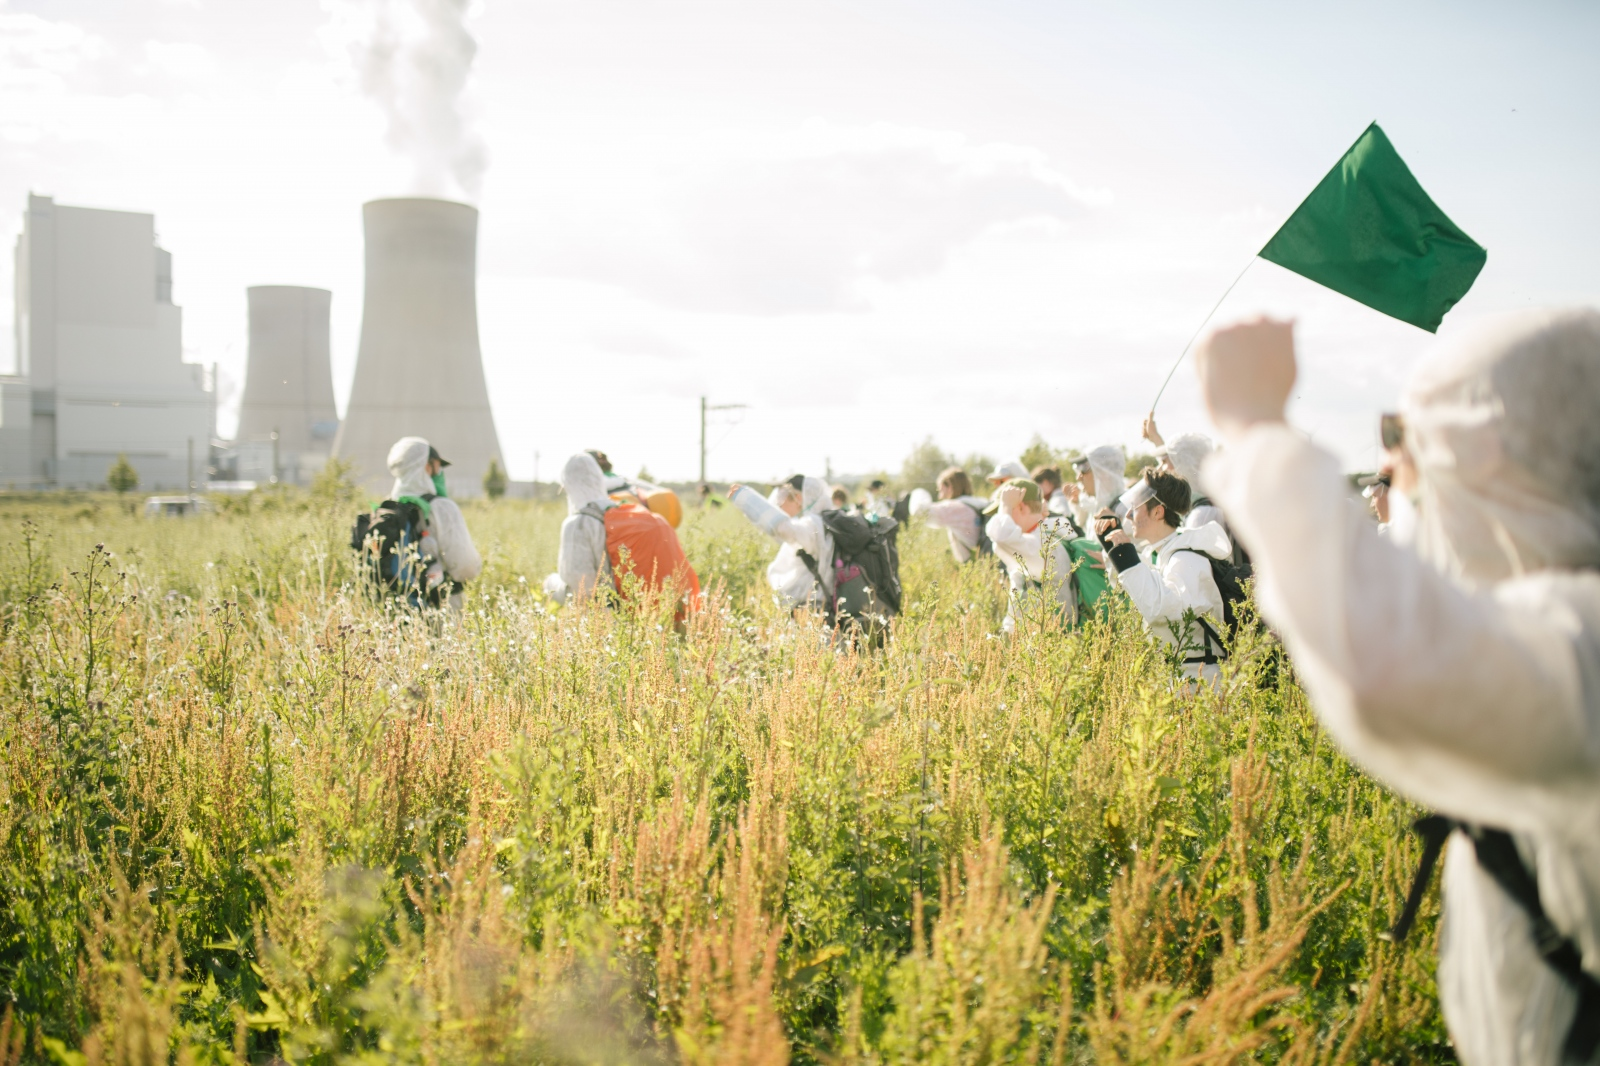 Activists on a field towards train tracks near Neurath power plant. 06-21-2019